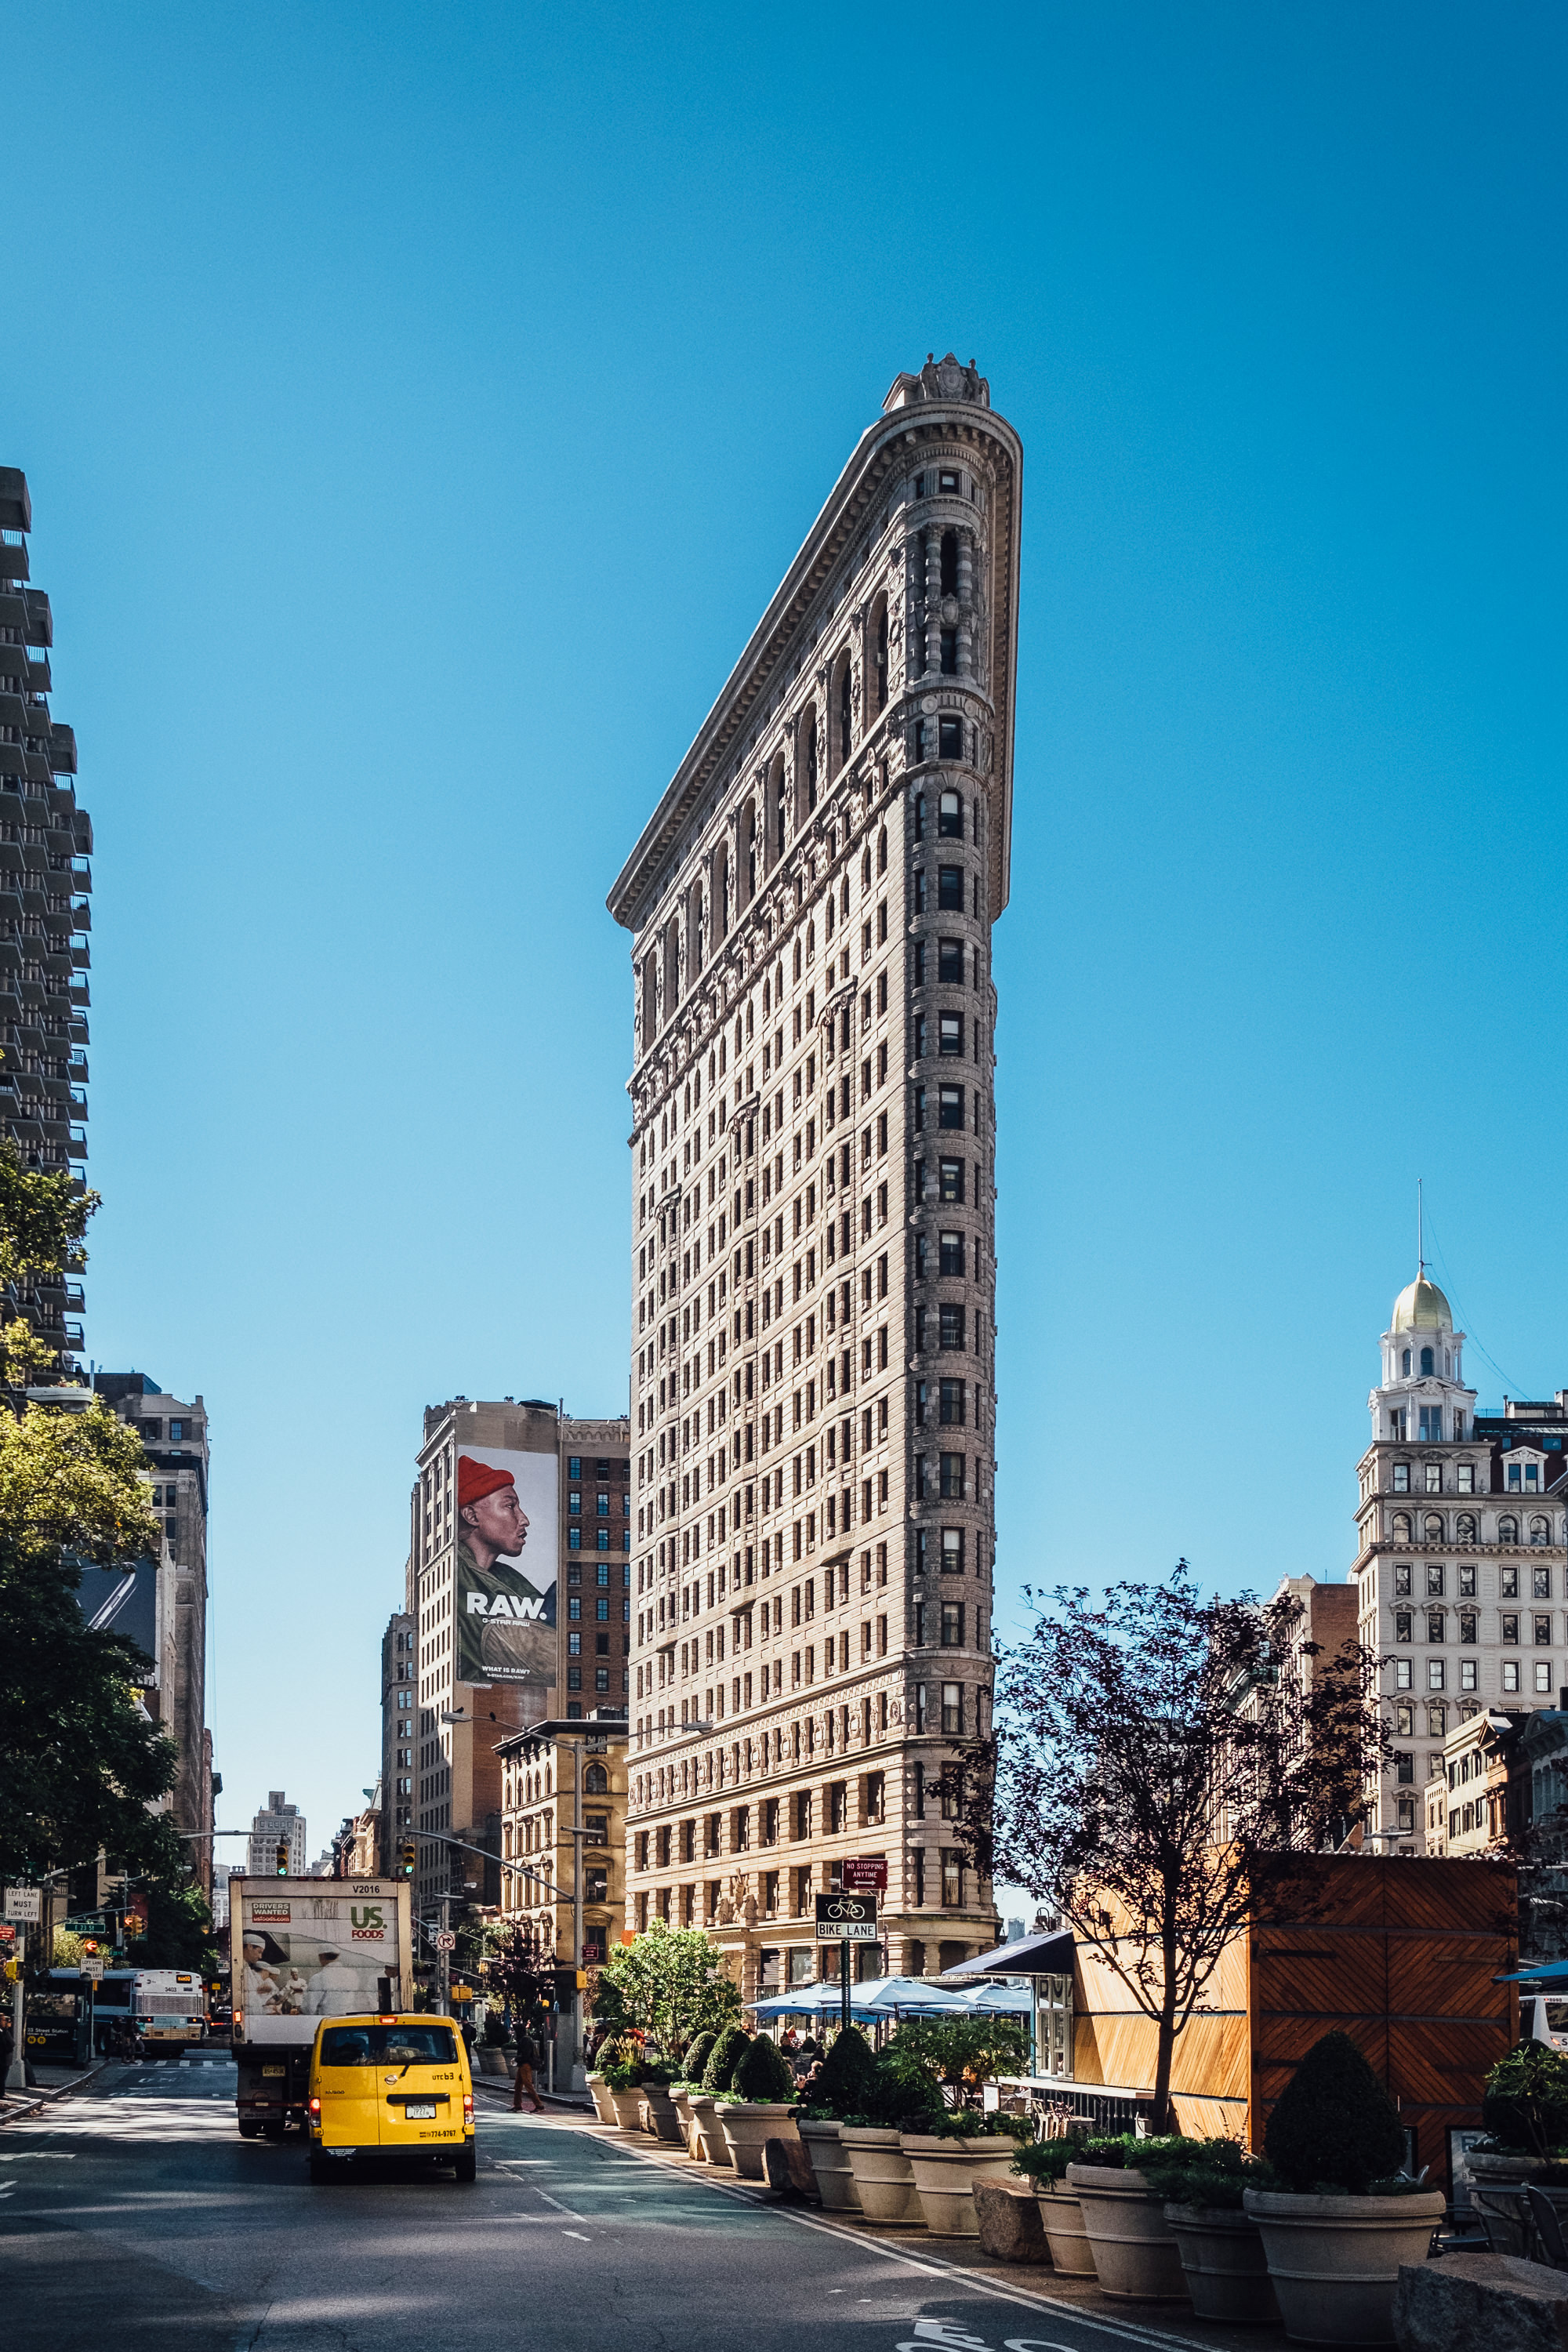 TUI_New York_Flat Iron Building